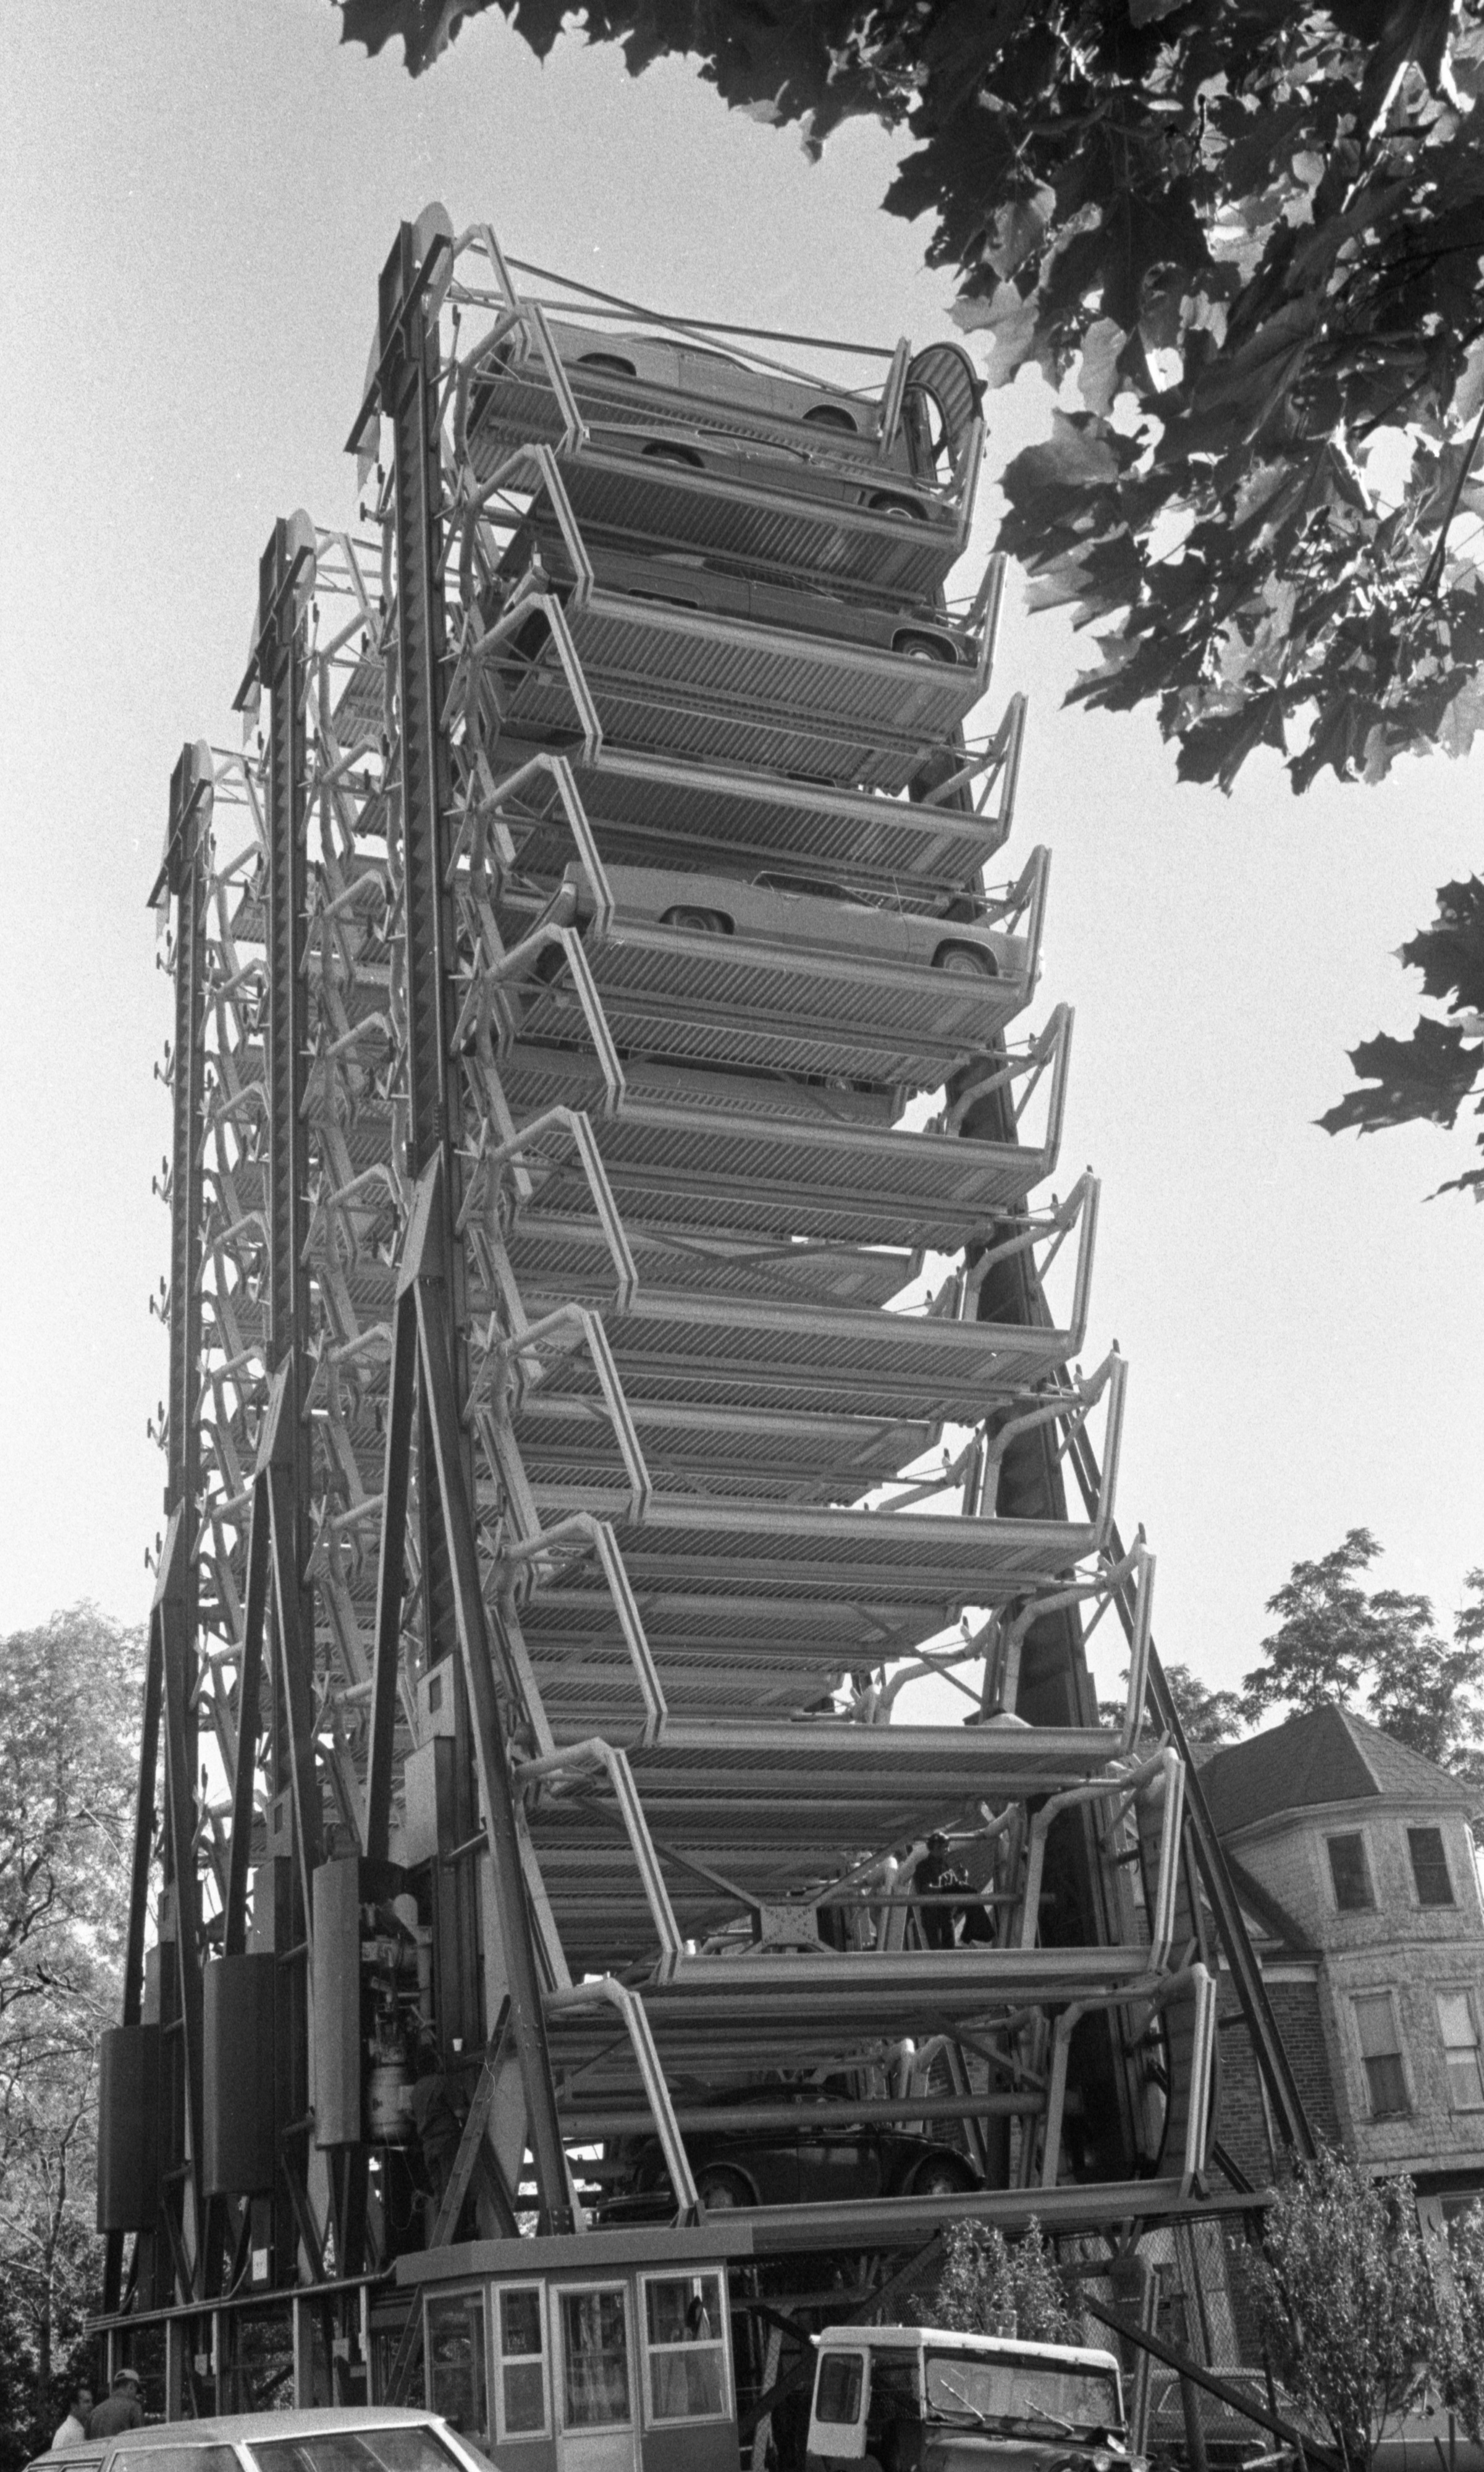 Cars Trapped On St. Joseph Mercy Hospital's Broken Park Mobile Structure, June 1974 image